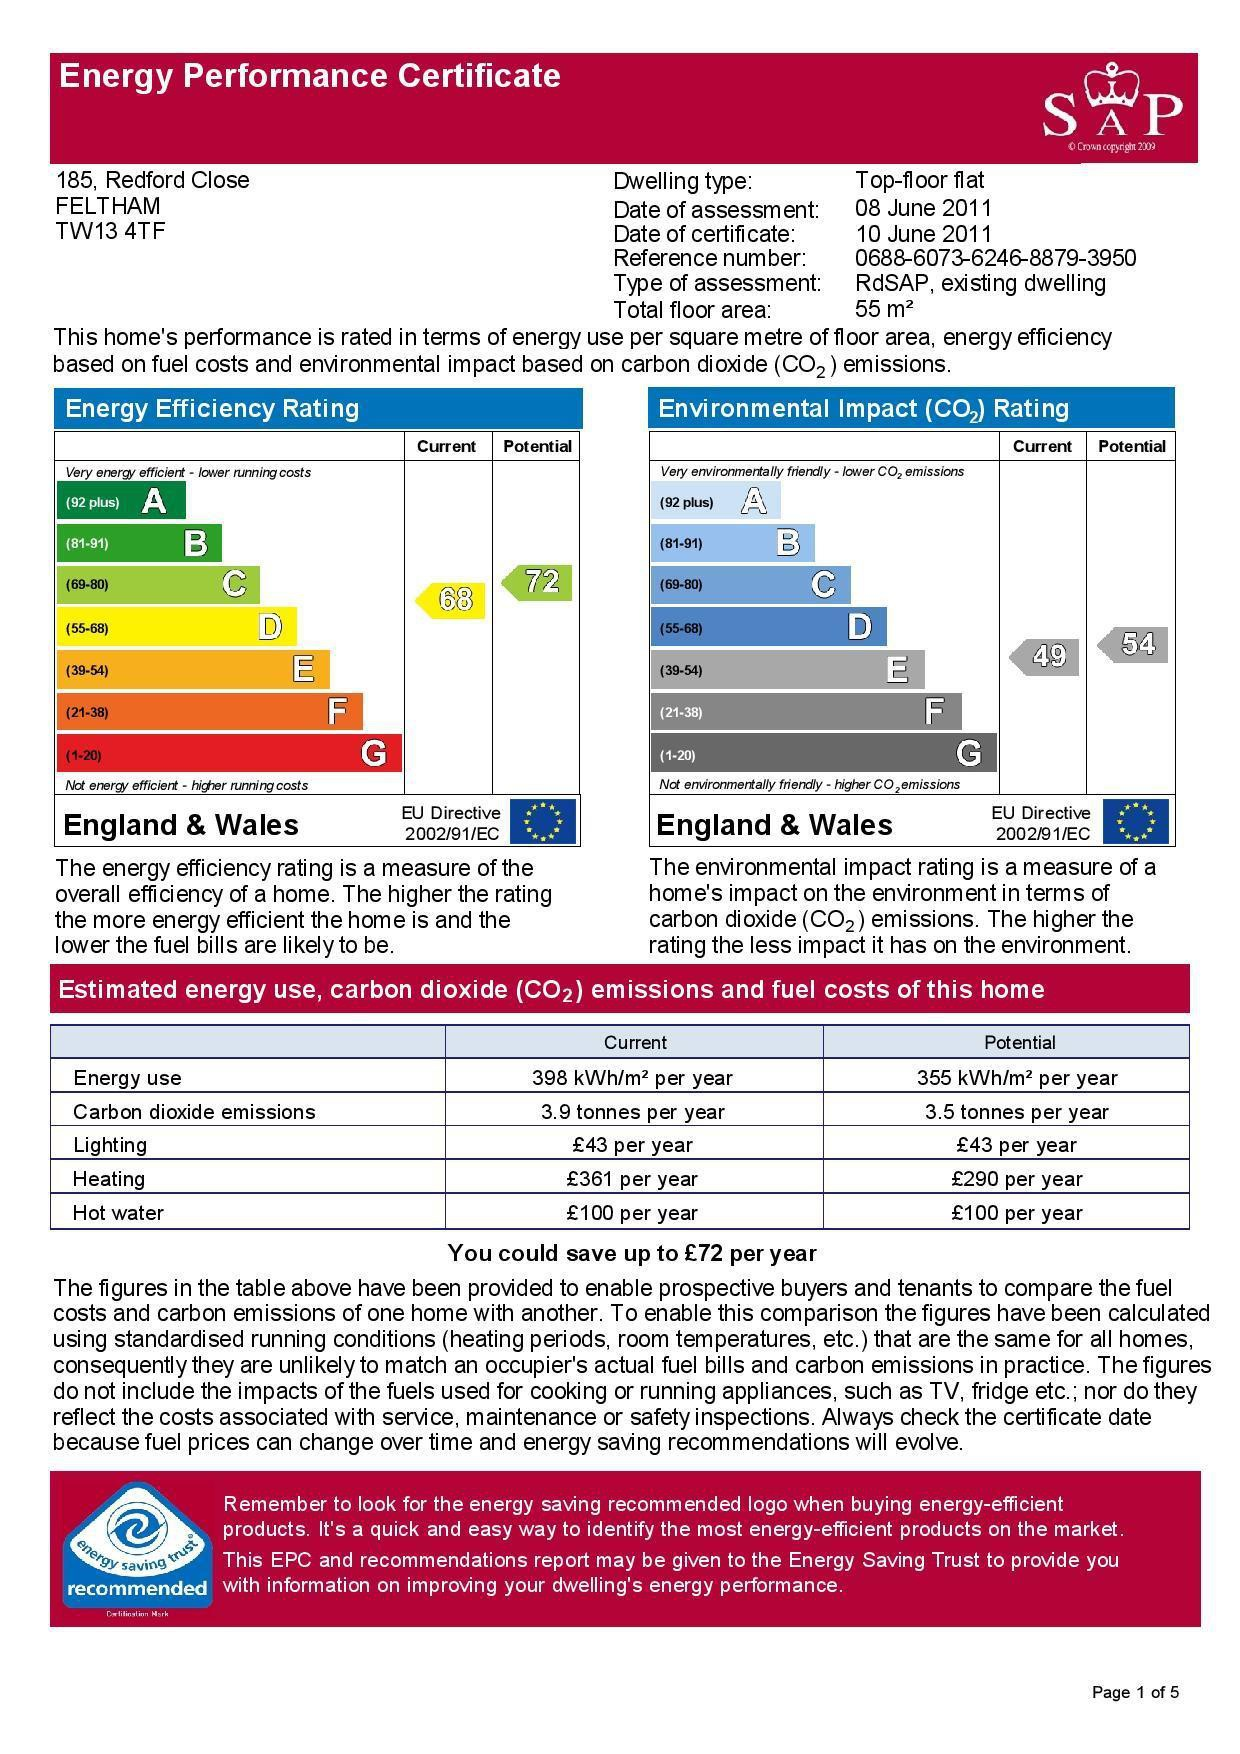 EPC Graph for 185 Redford Close, Feltham, Middlesex TW13 4TF